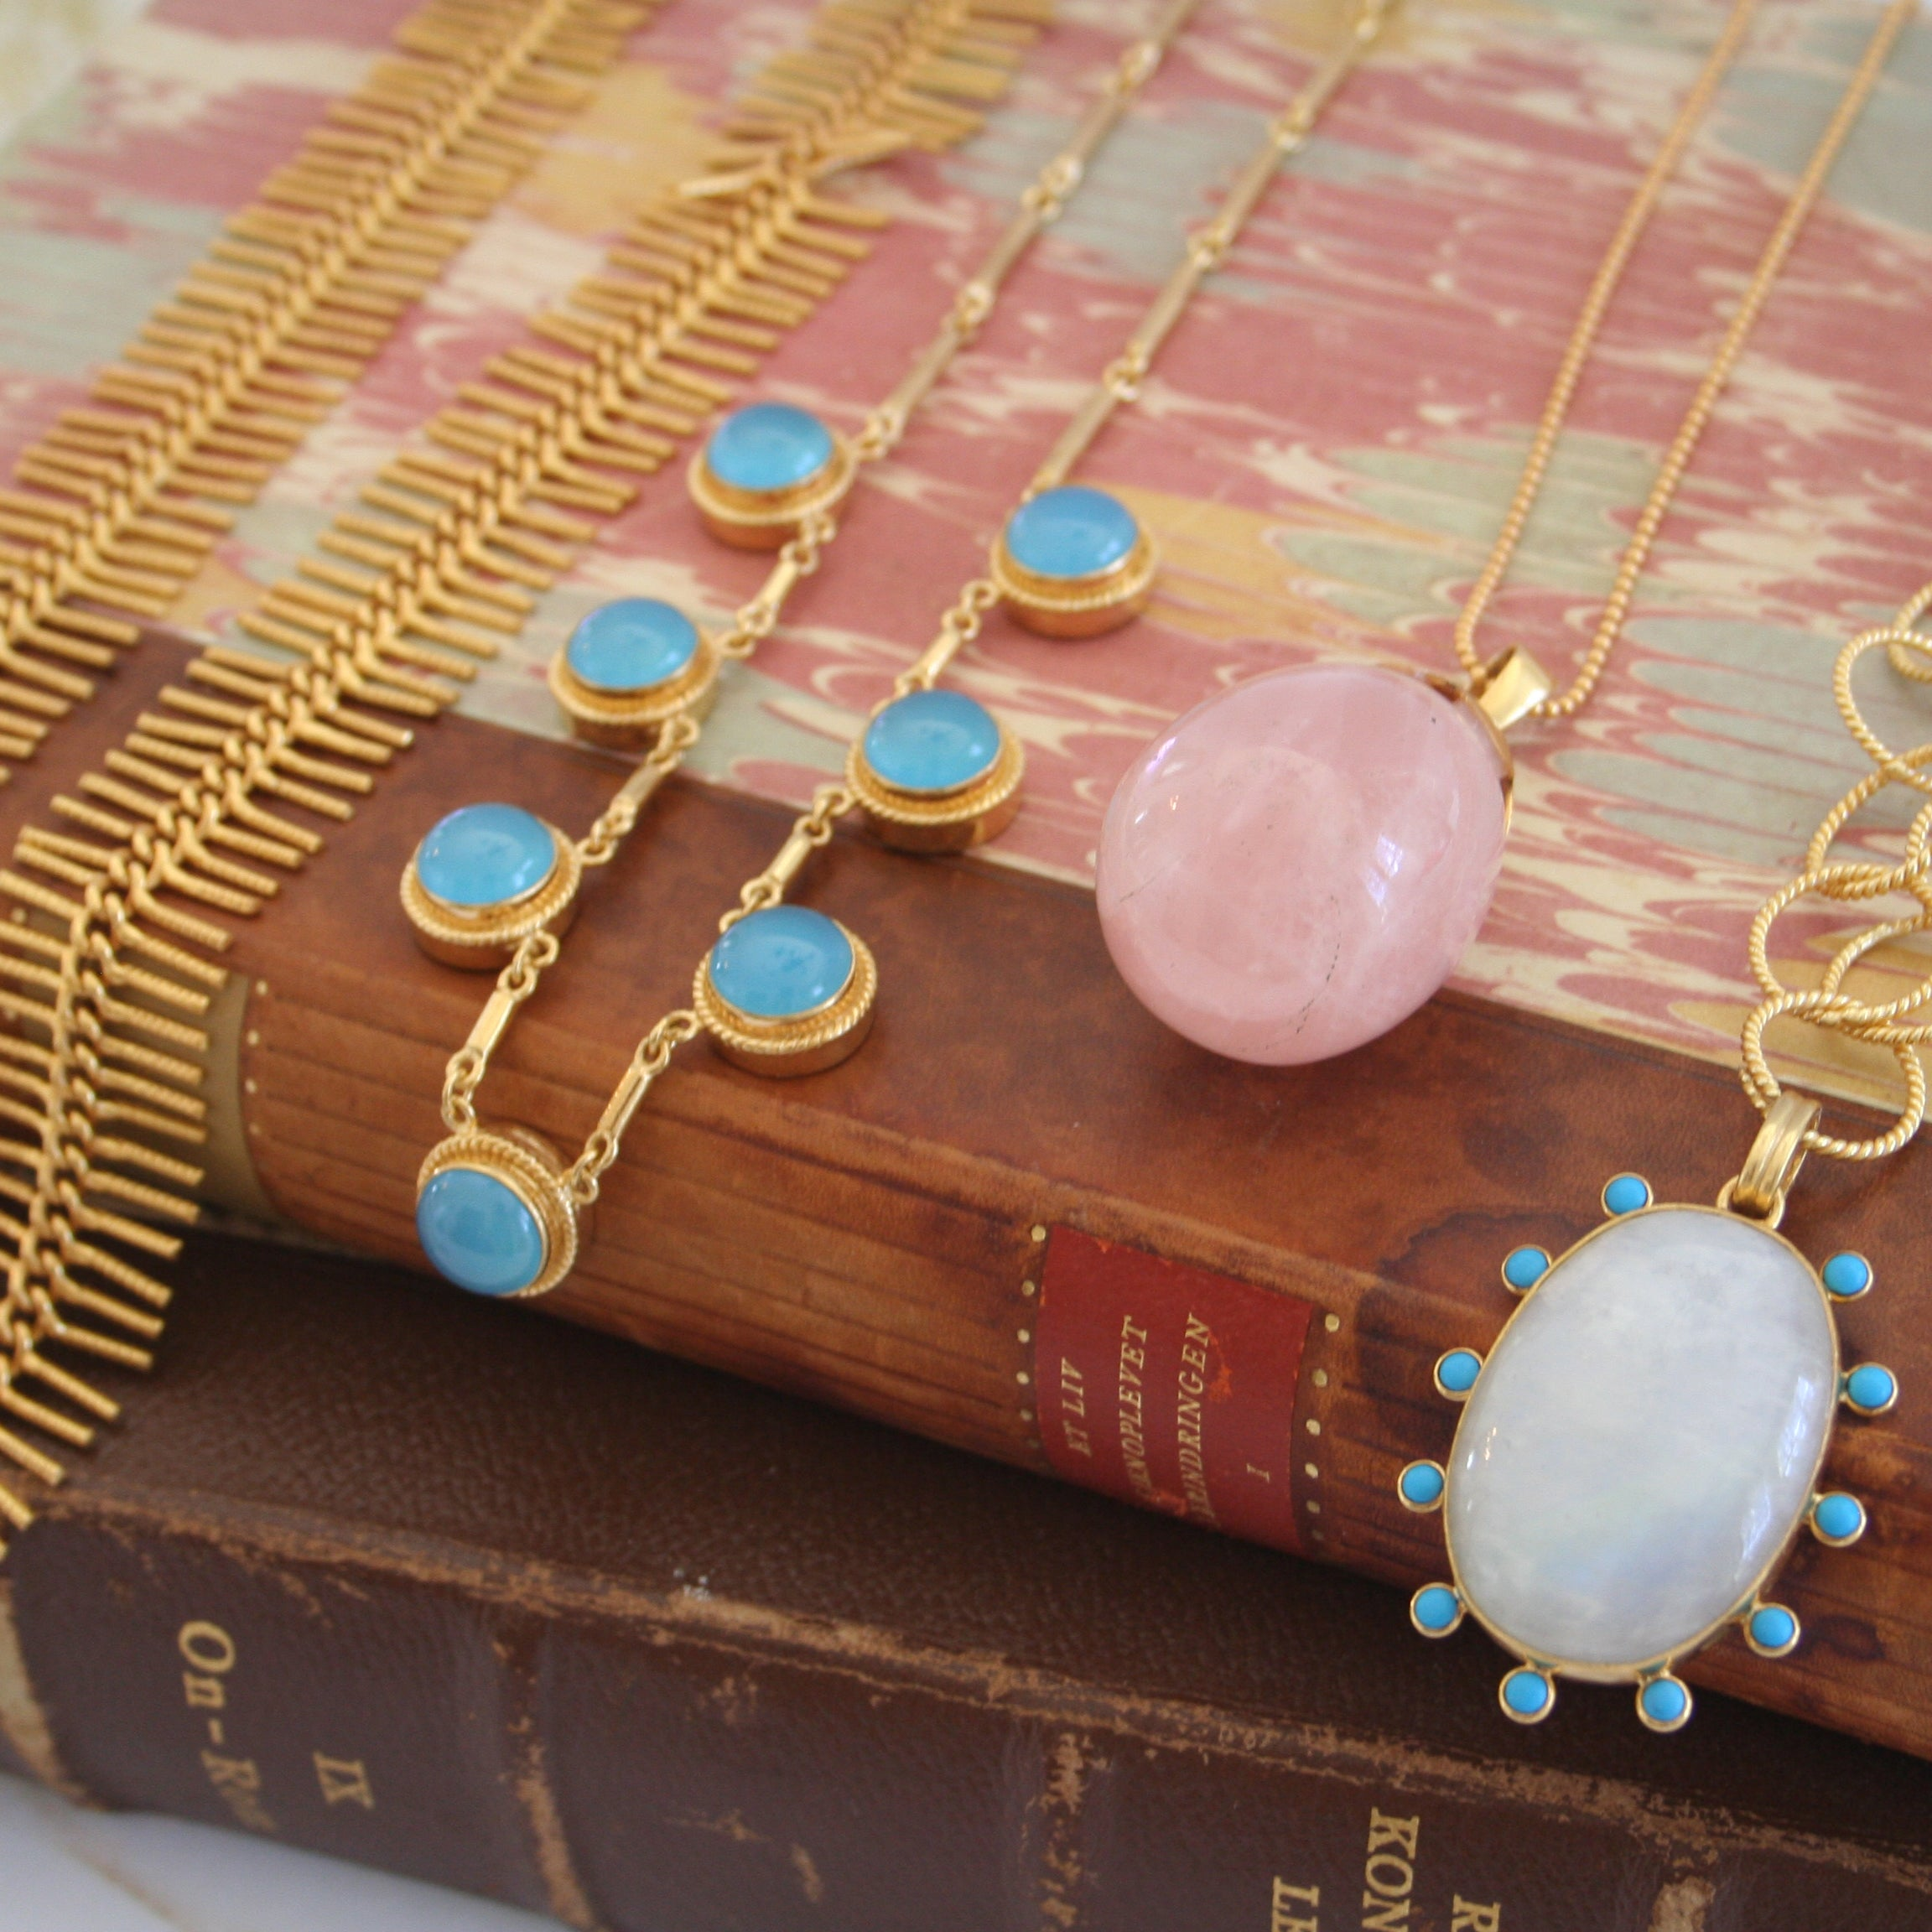 Gemstone Necklaces.